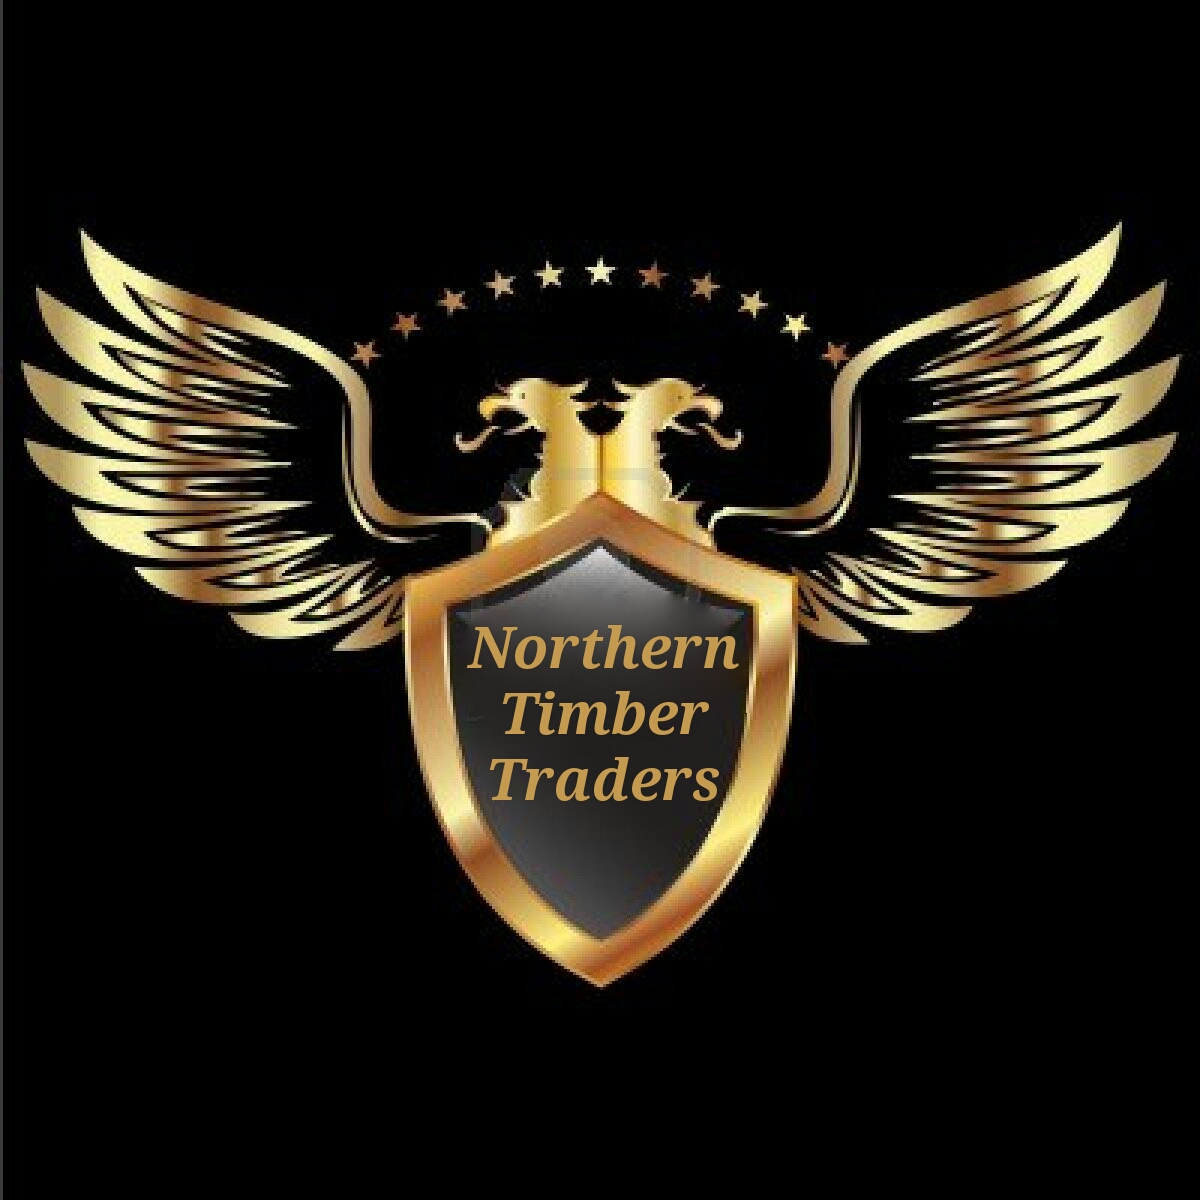 Northern Timber Traders